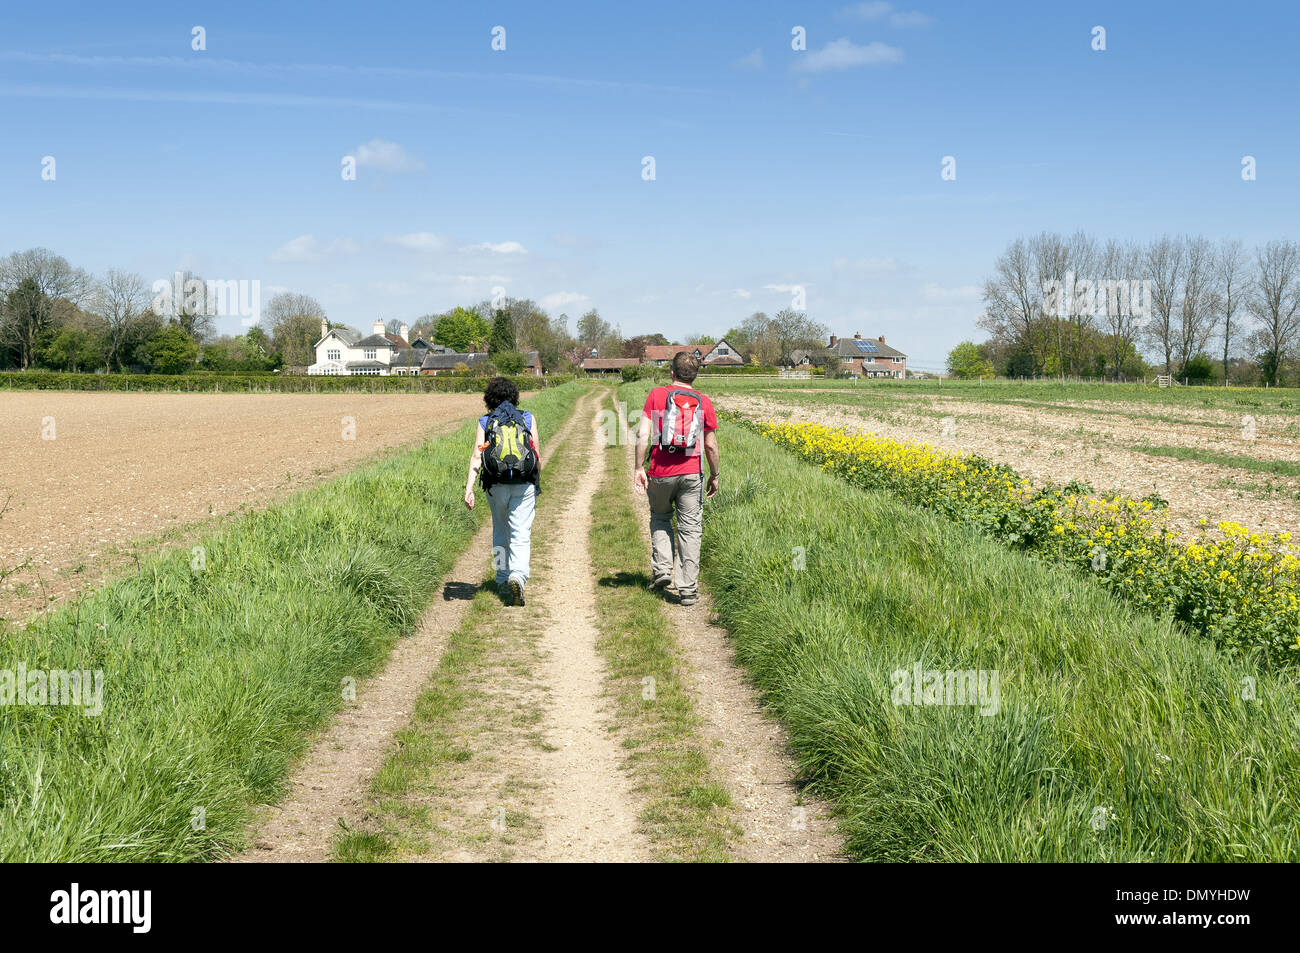 Couple walking on country lane near Nob's Crook in Hampshire, England, UK - Stock Image